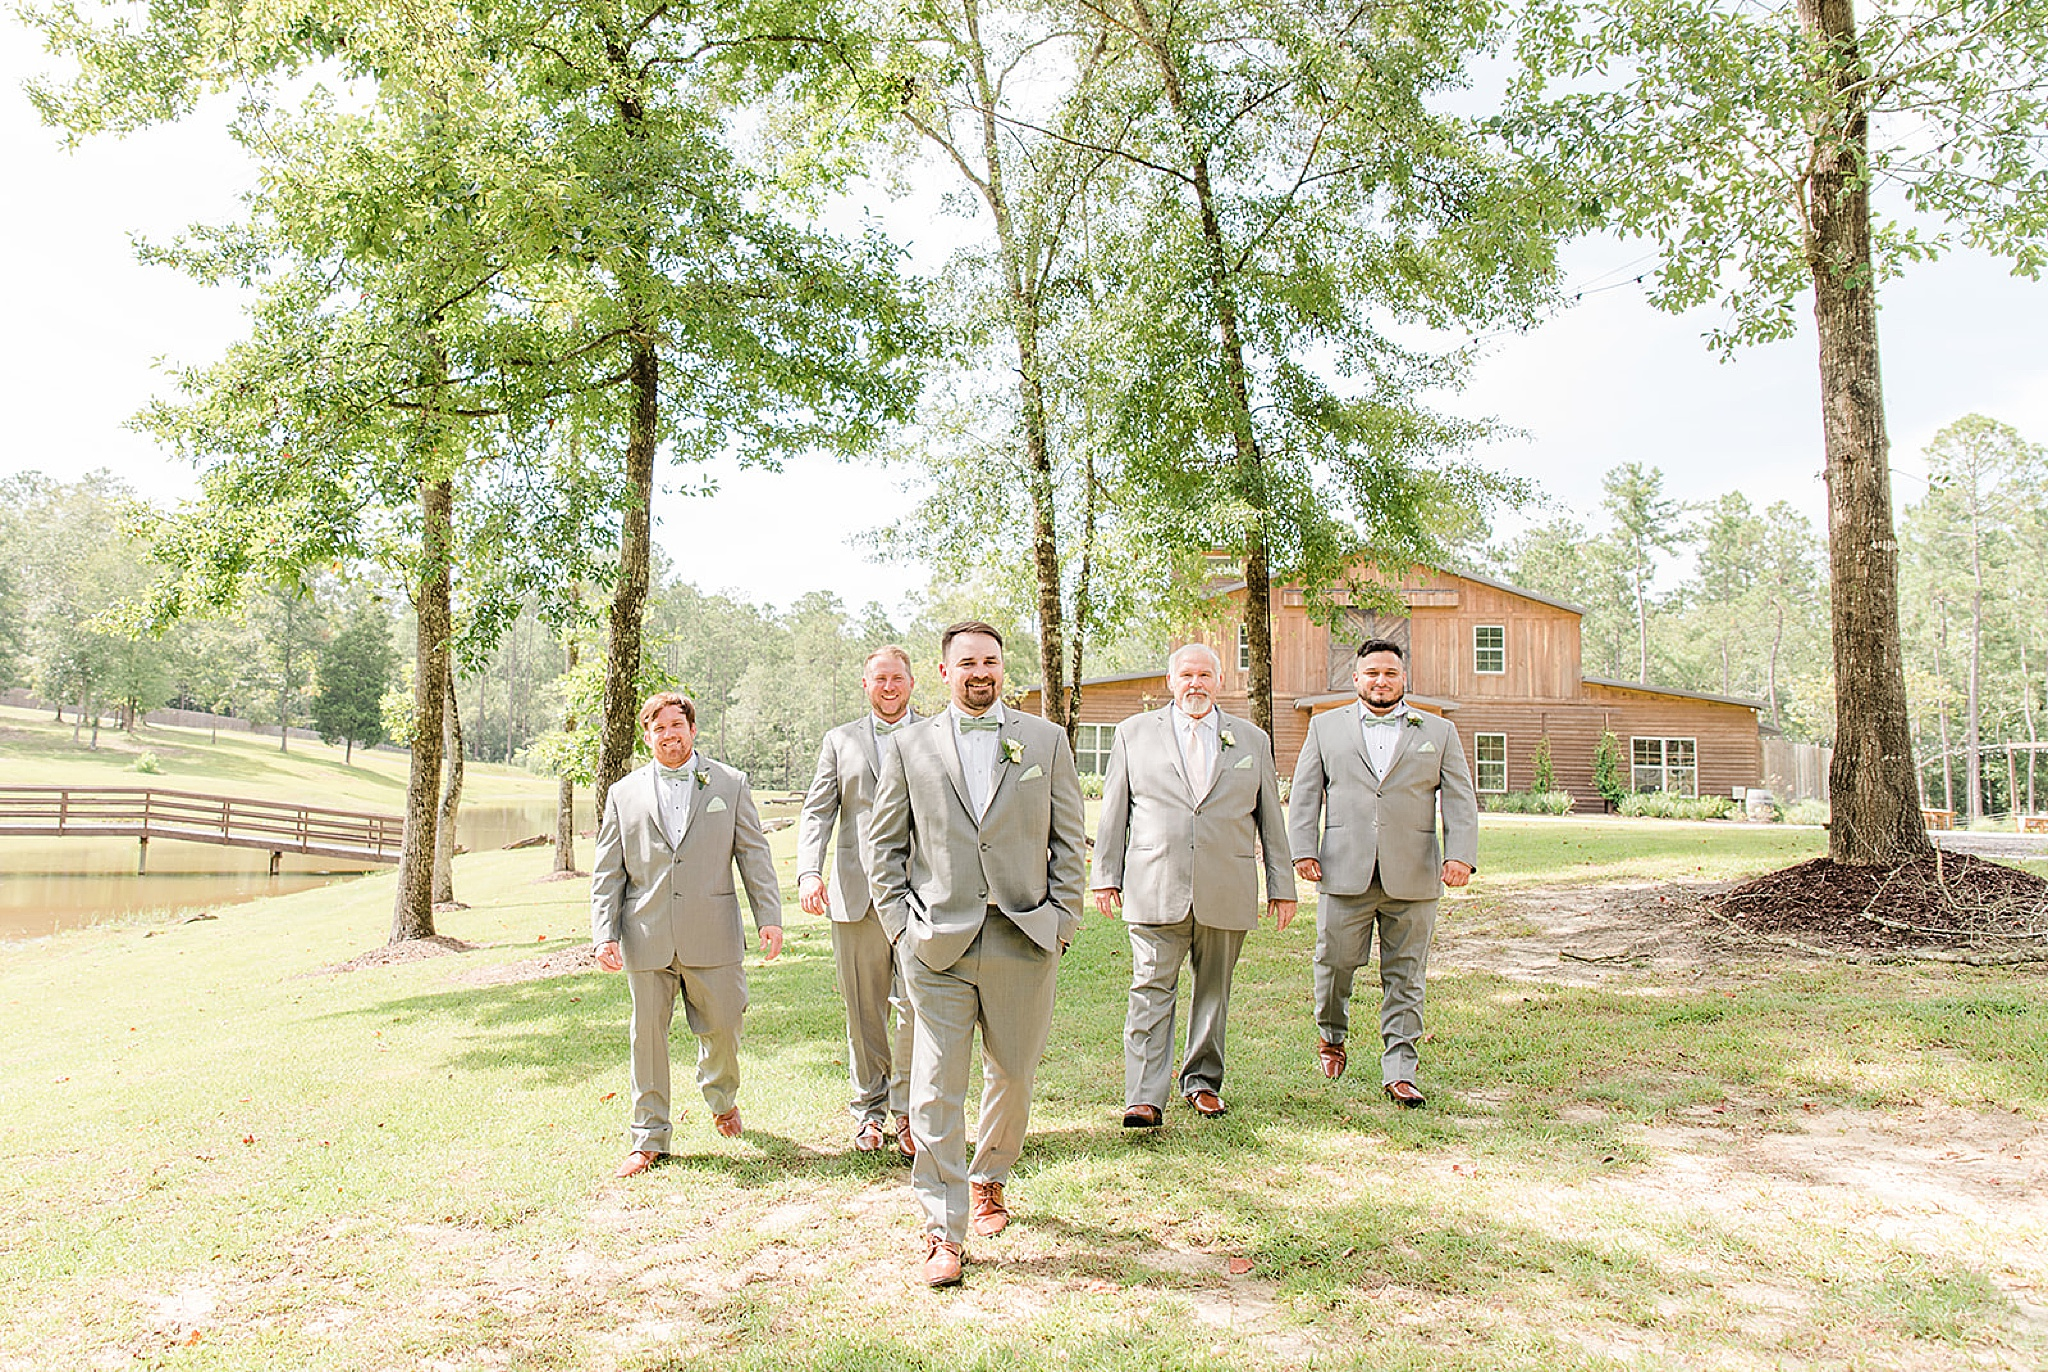 groomsmen walk along Izenstone's property